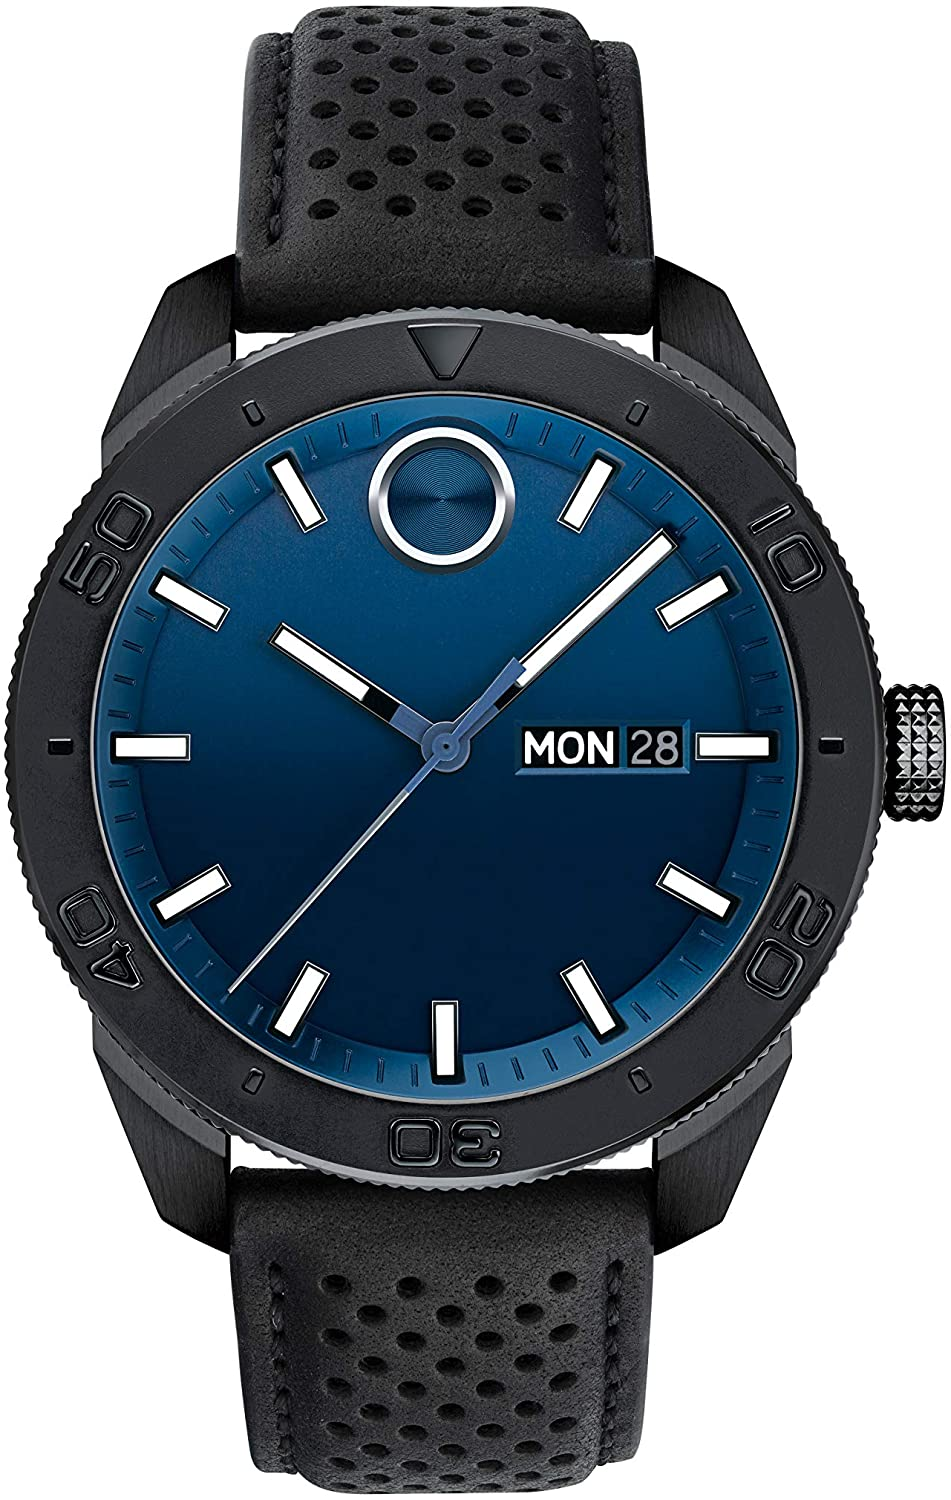 Movado Men's BOLD Sport Black PVD Watch with a Printed Index Dial, Blue/Black (Model 3600495)